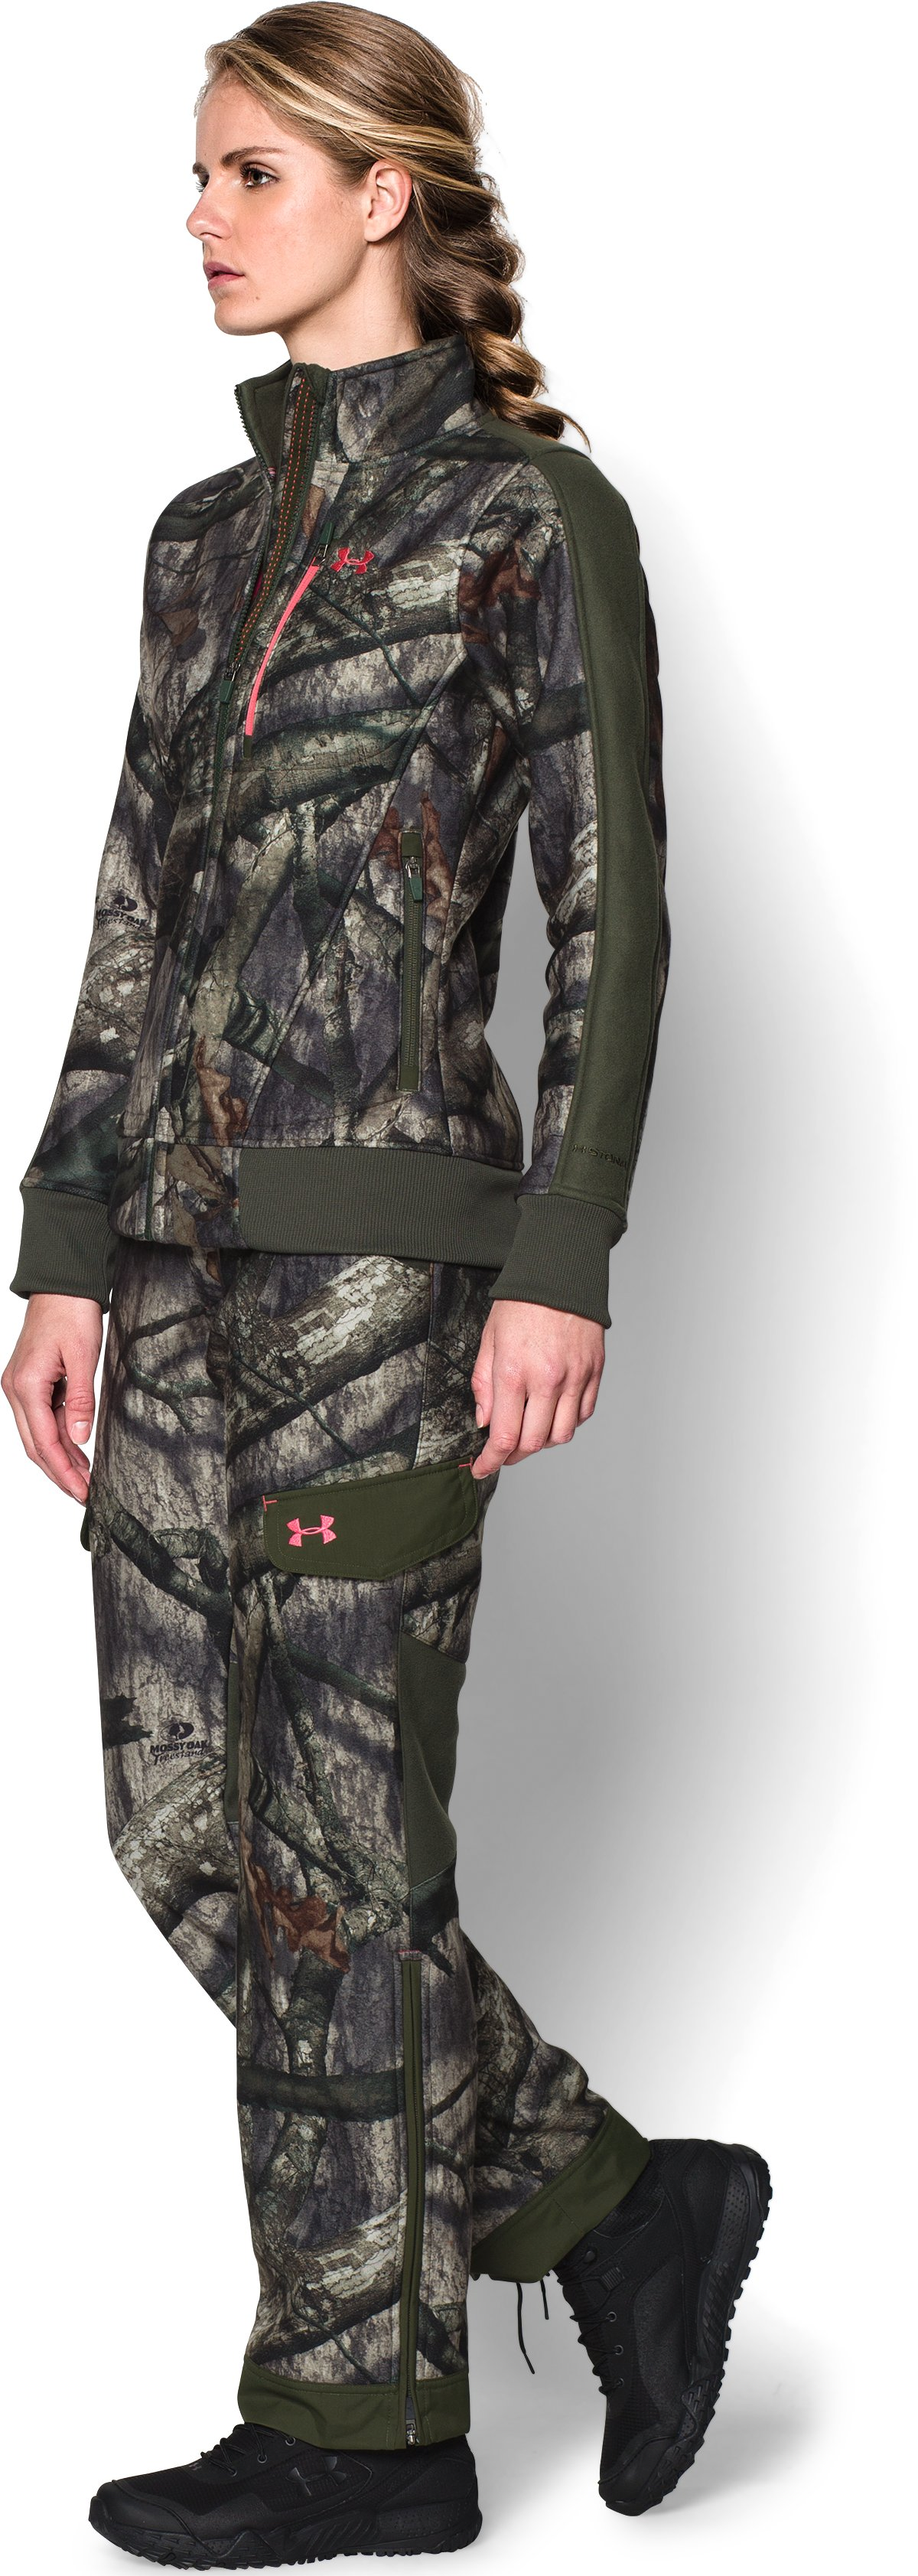 Women's Ayton Fleece Jacket, Mossy Oak Treestand